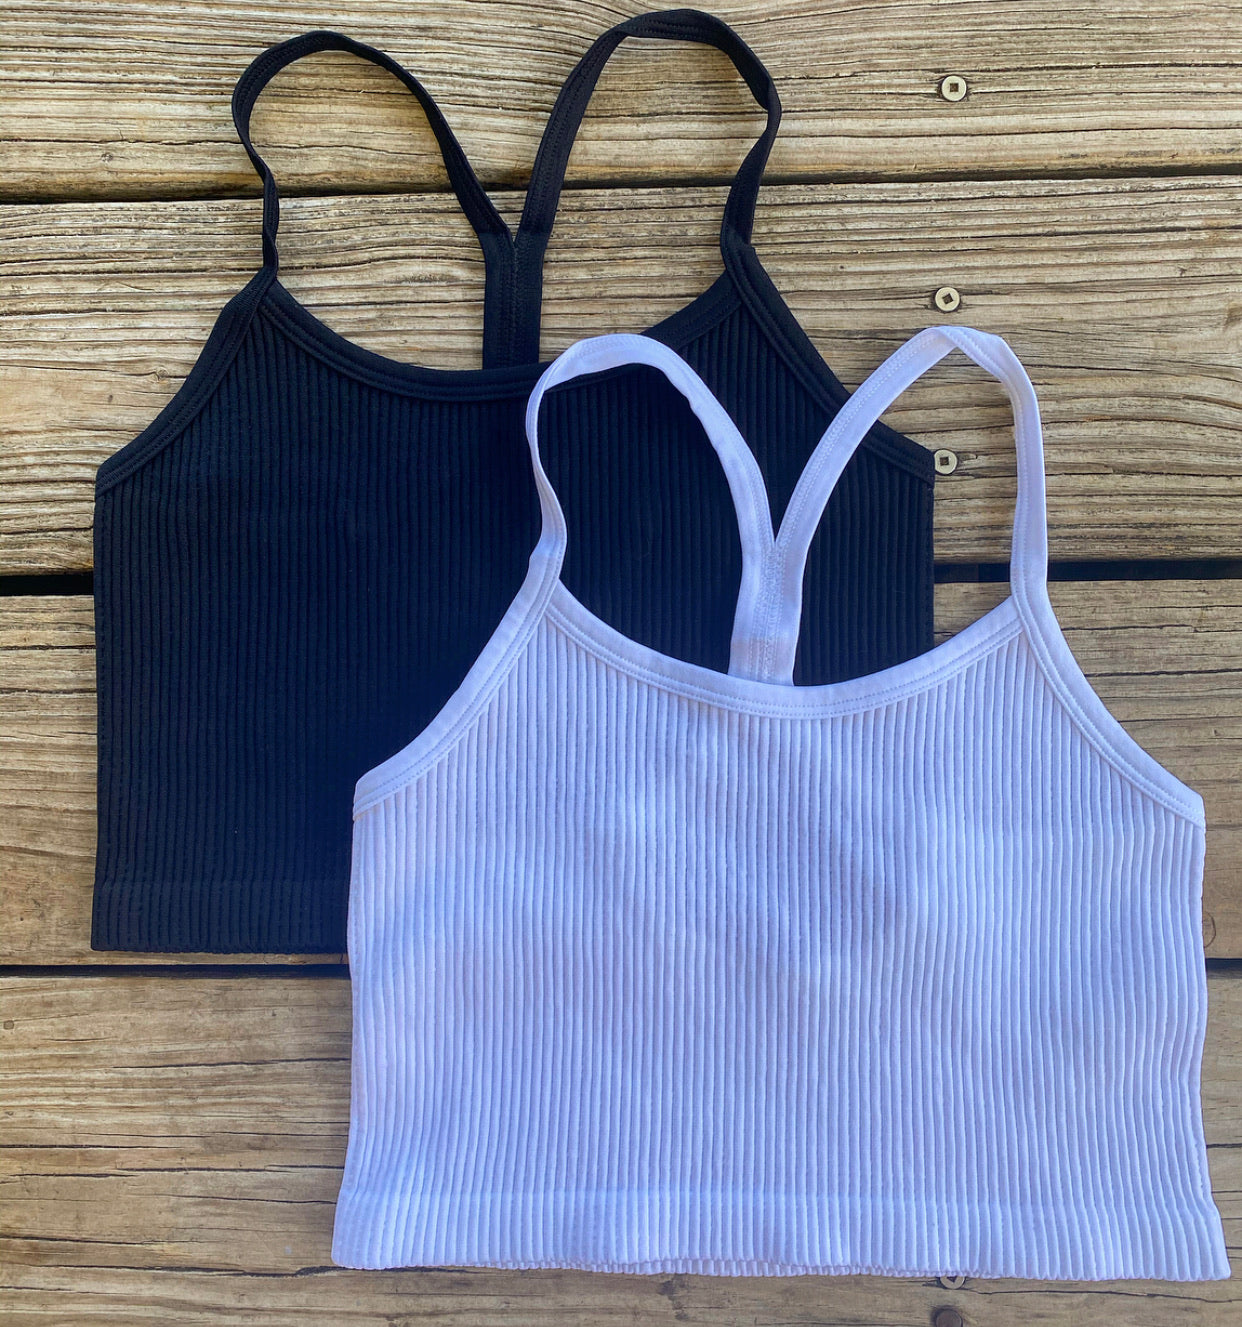 """Ole Holla Back"" Ribbed Body Shaping Layering Cropped Tank Top &/or Bralette"